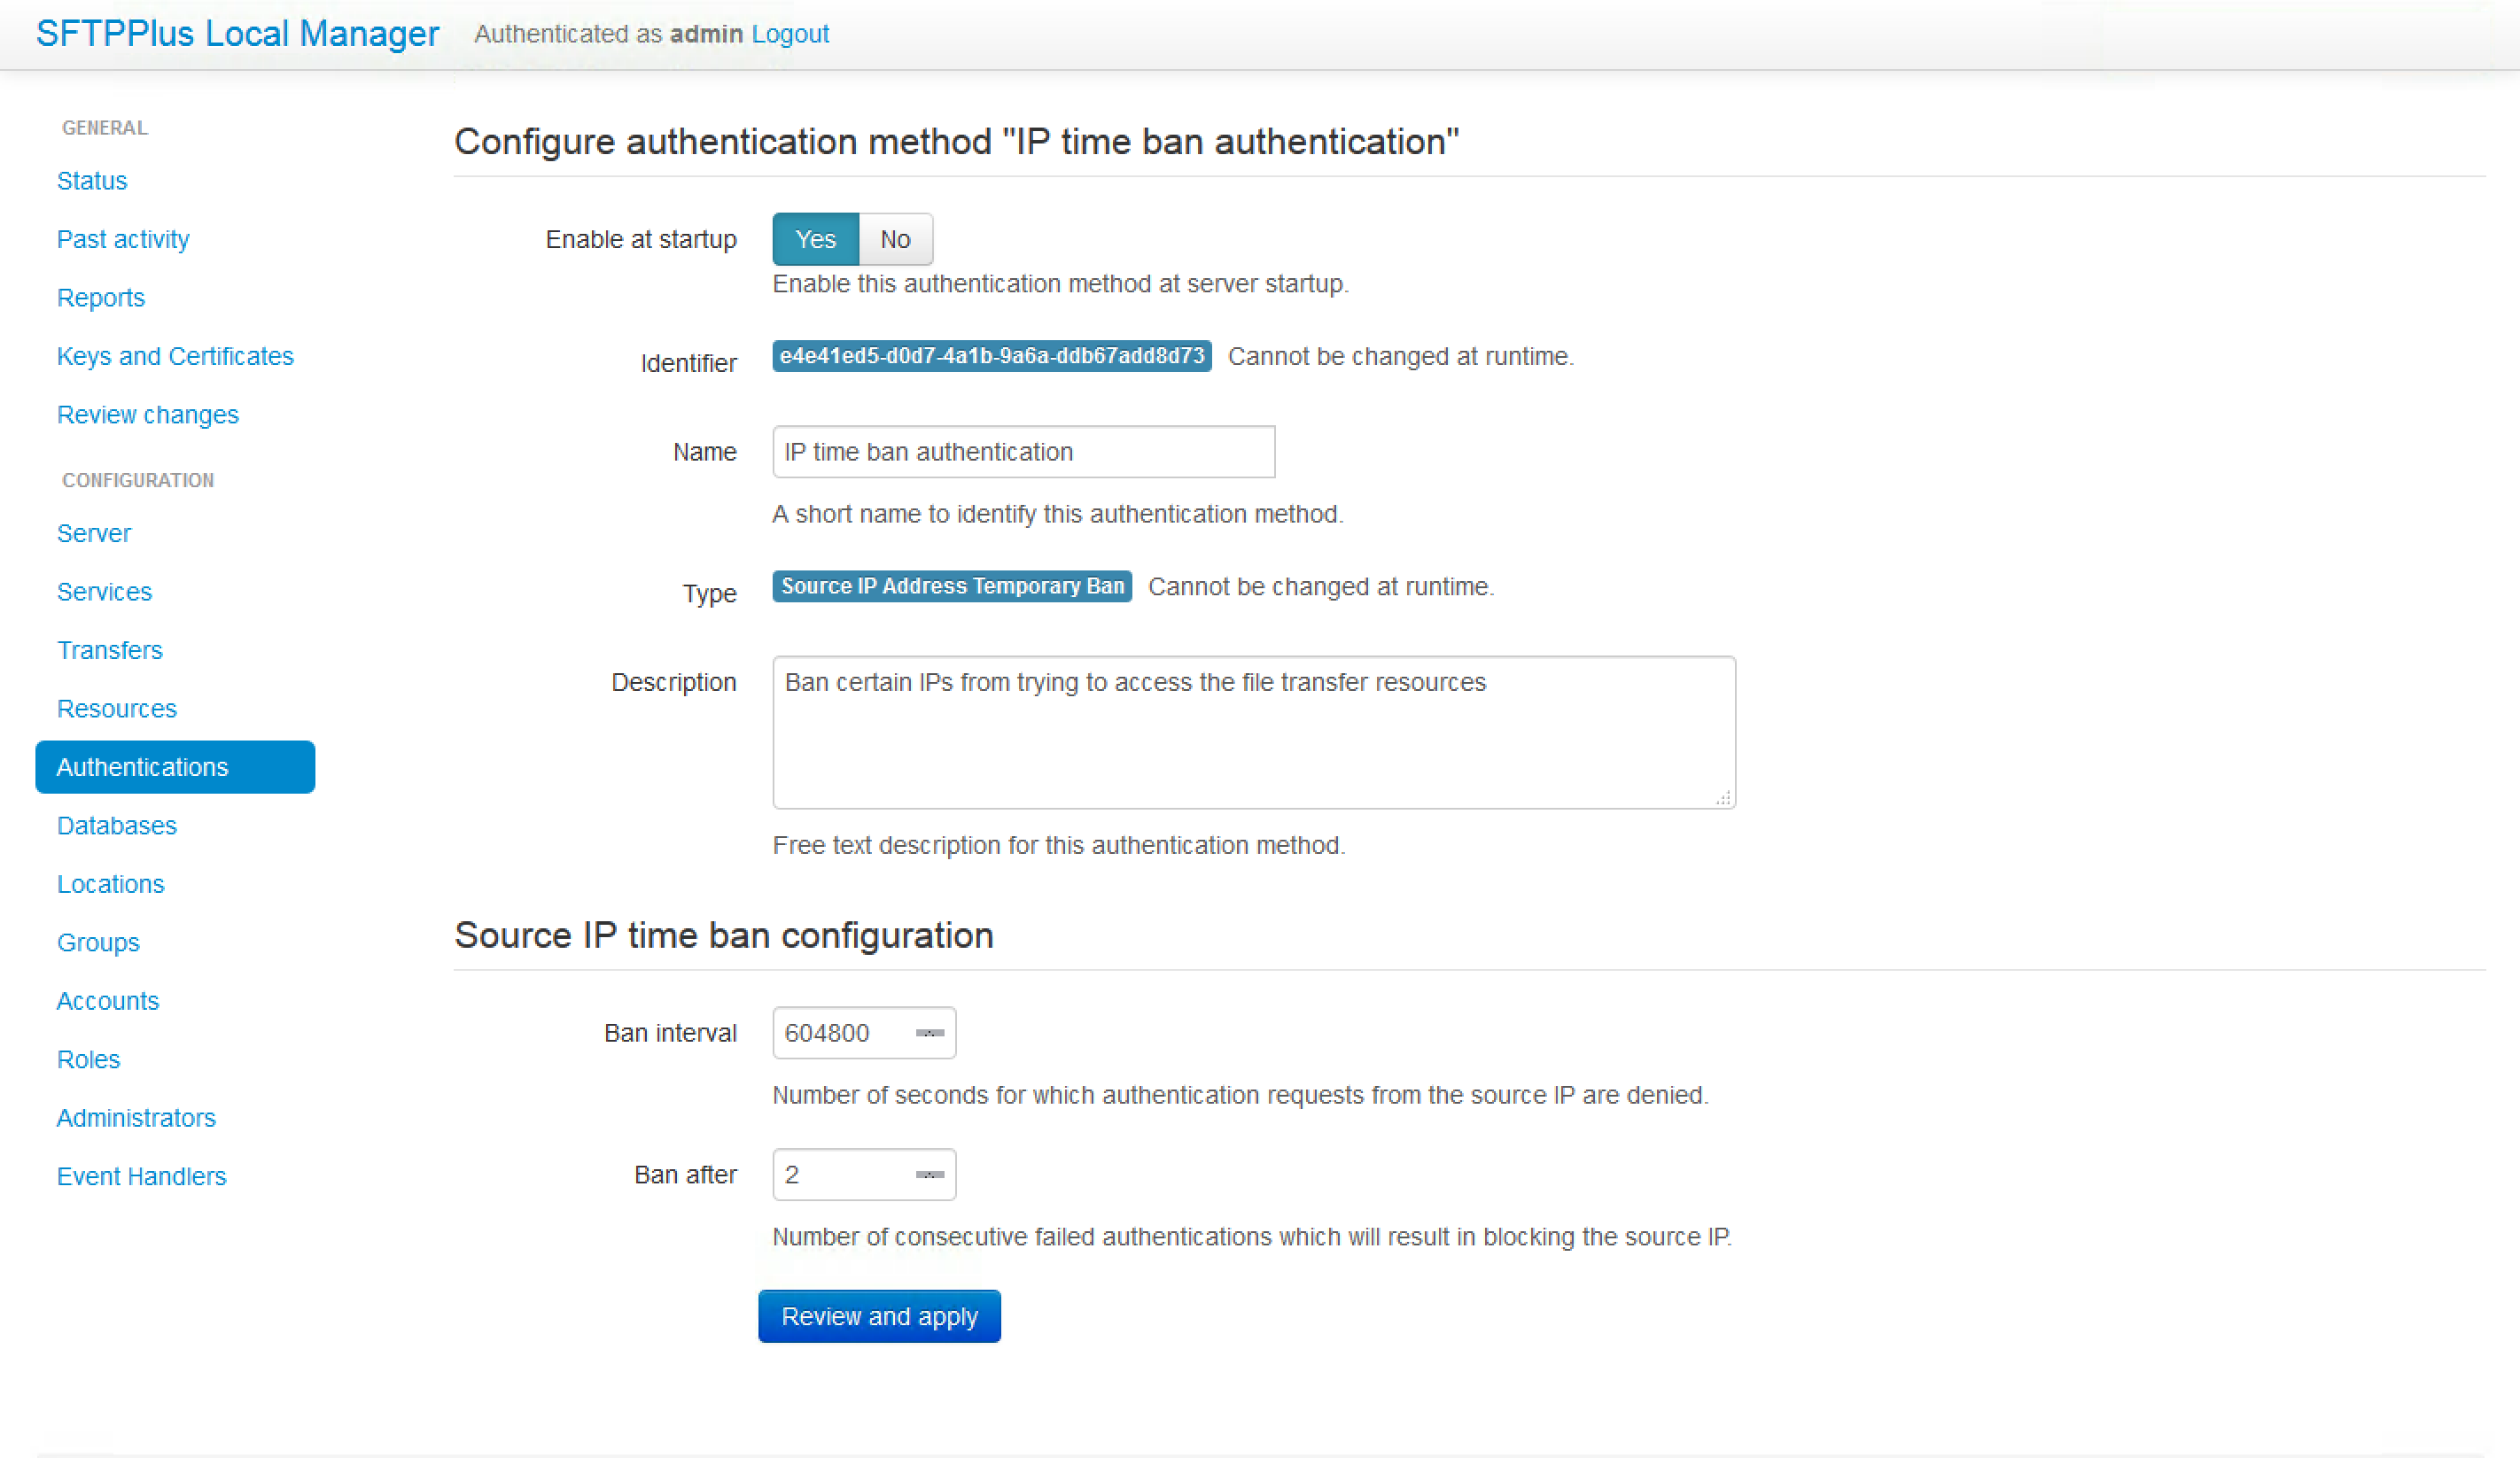 An authentication method configuration provides the required information to allow SFTPPlus to use a specific method in order to authenticate accounts. You can define multiple authentication methods. For example, the authentication method shown (IP time ban authentication) can be used in conjunction with other methods.